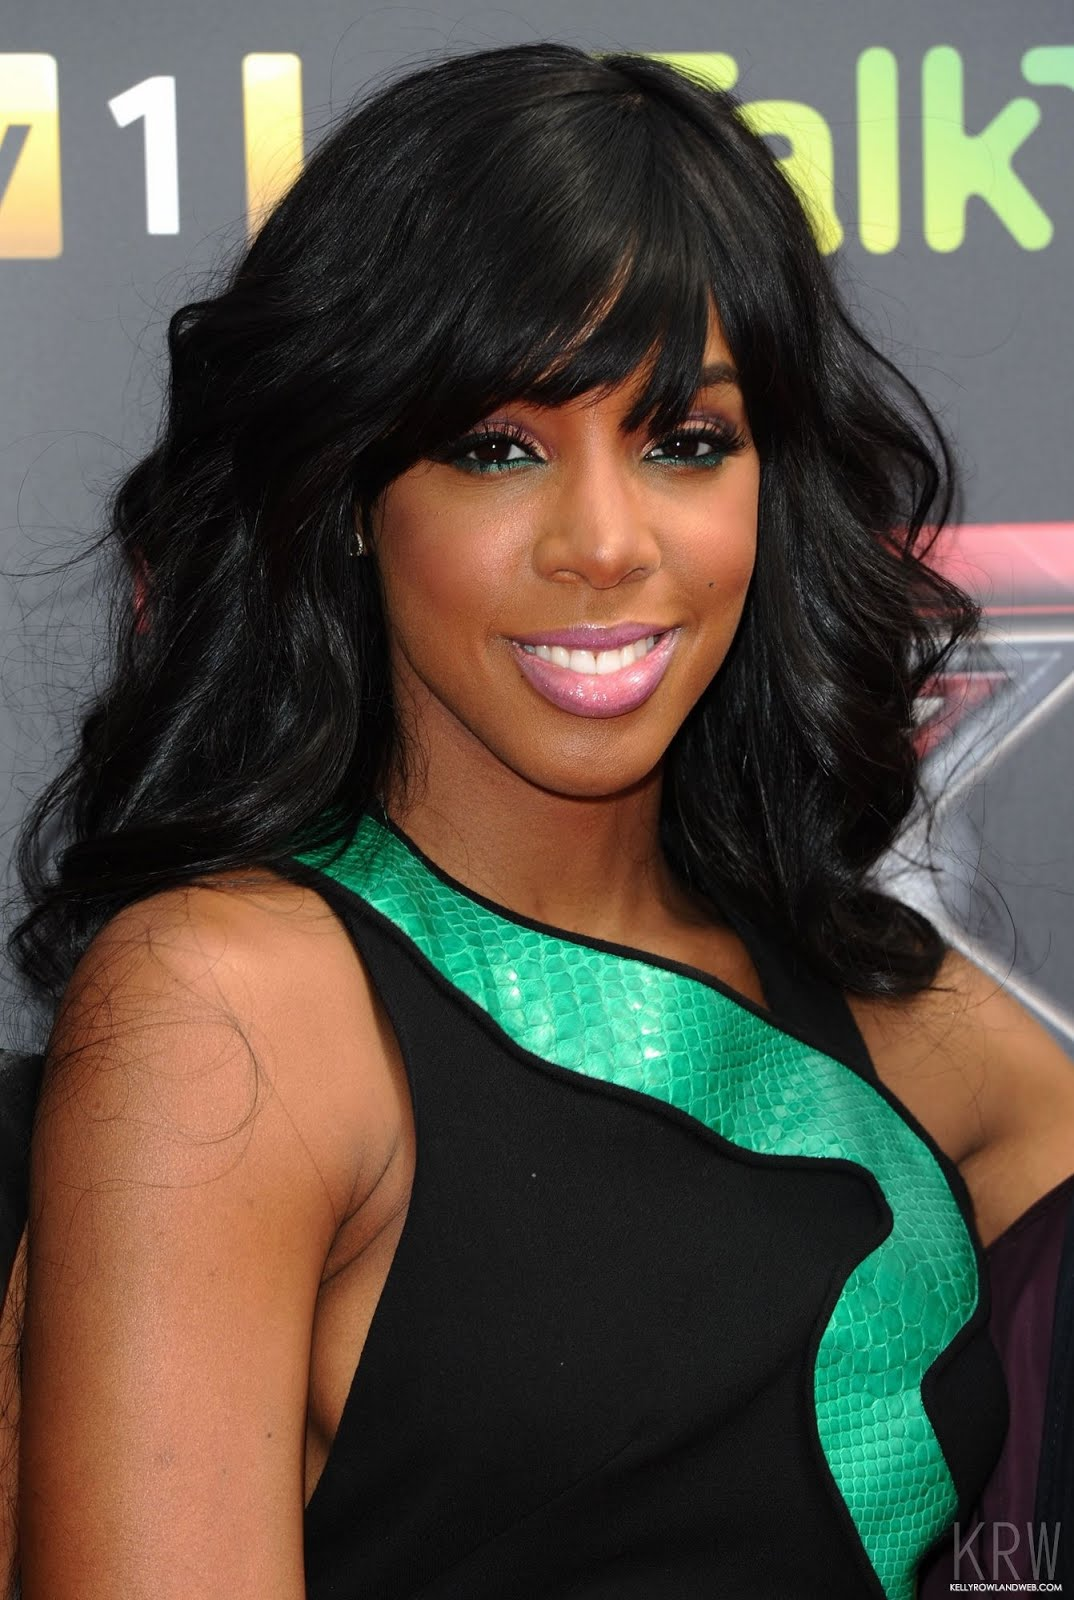 http://1.bp.blogspot.com/-3IumgNrspks/UKhcf8v7tMI/AAAAAAAAG7w/2F-oDmGLe9A/s1600/Kelly-Rowland-at-the-X-Factor-Press-Launch-kelly-rowland-24739420-1342-2000.jpg